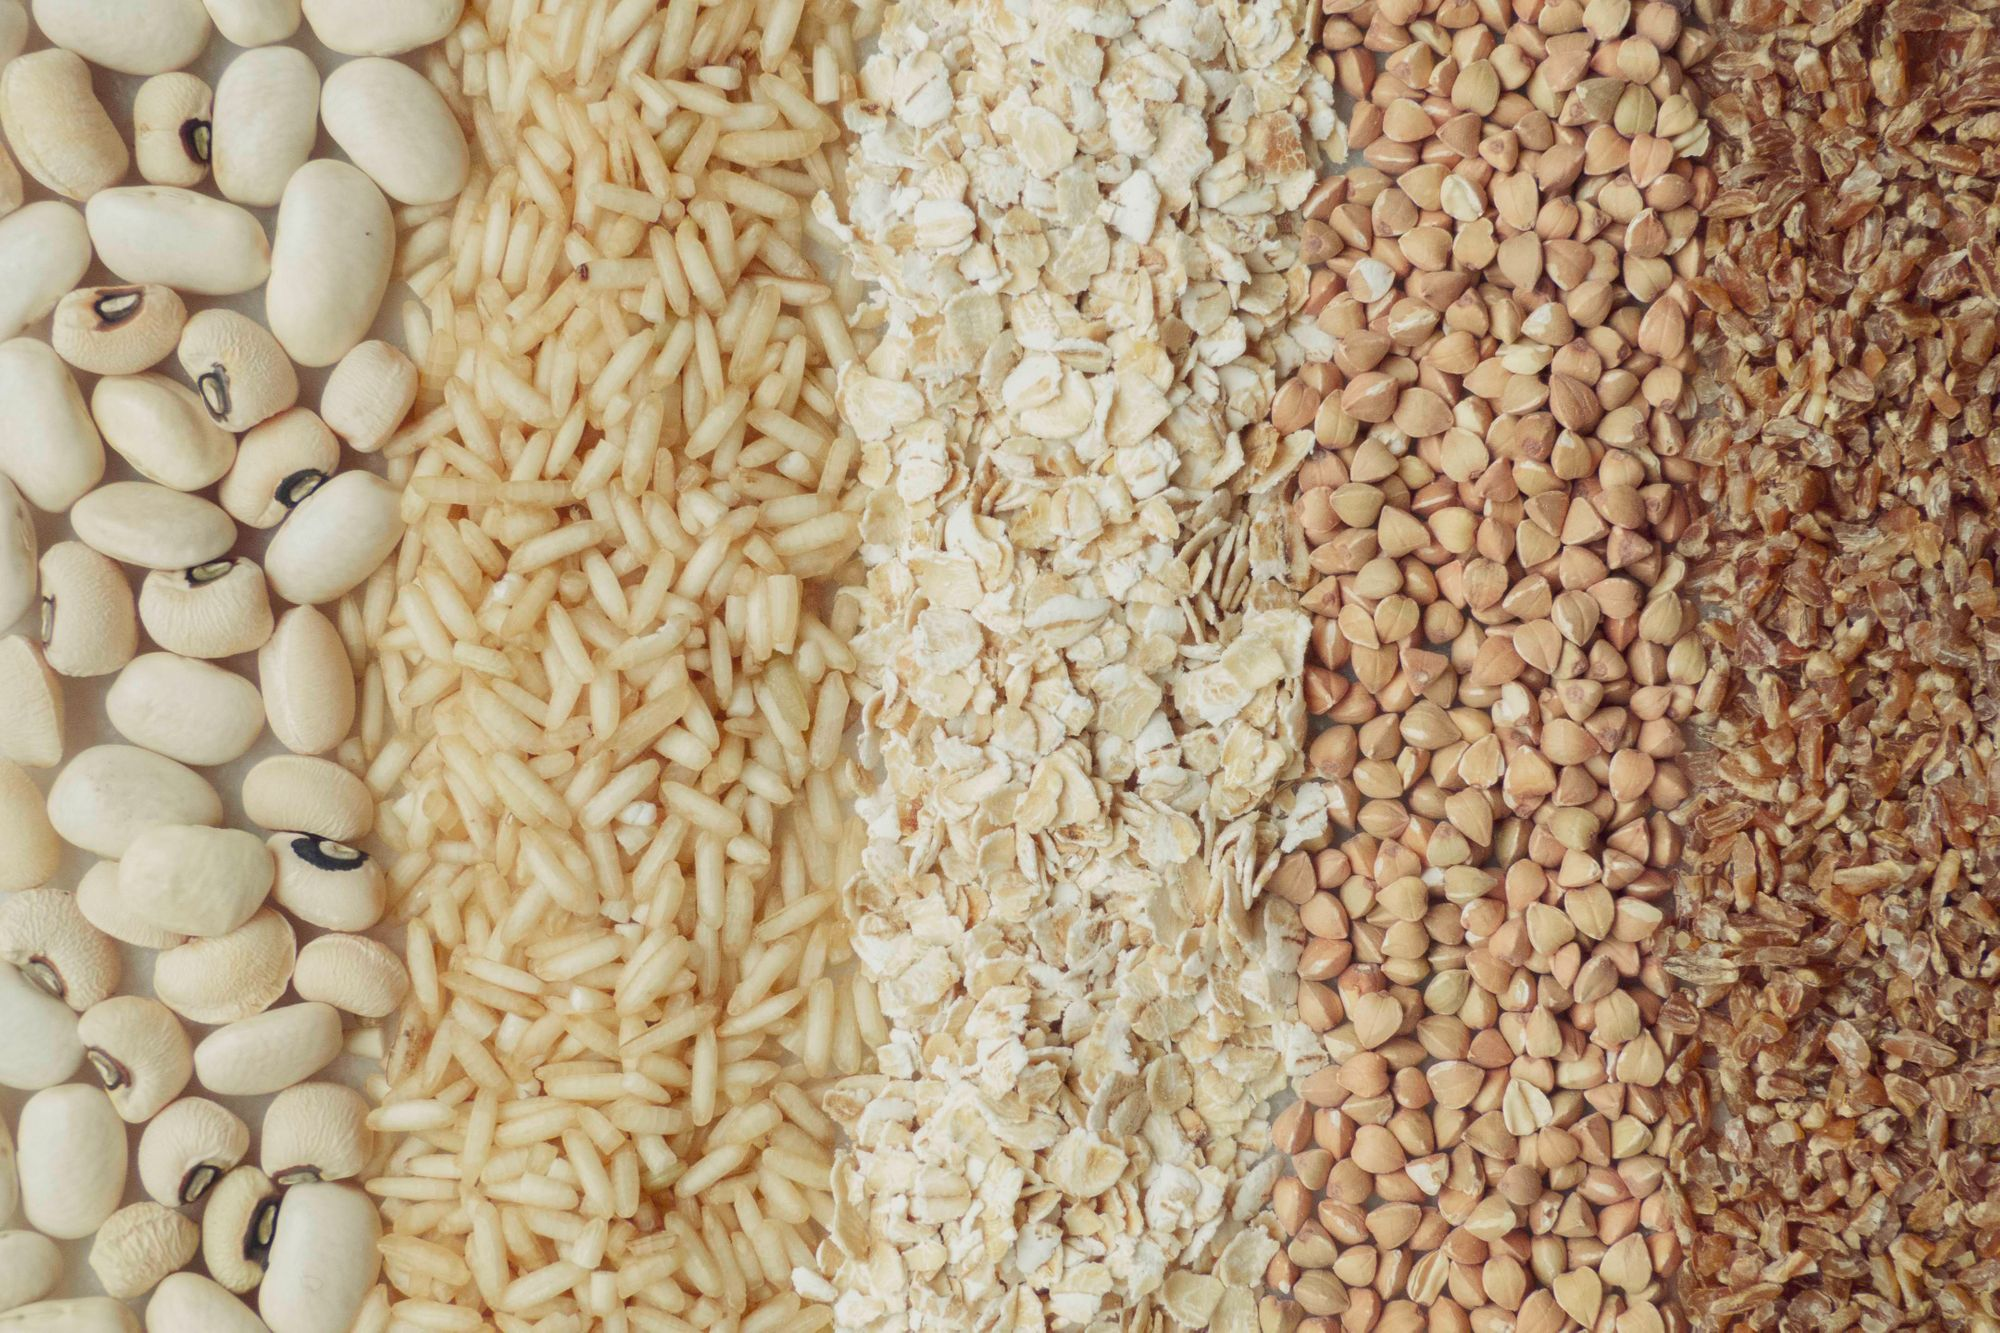 Whole grains can heal your gut by FOODISM360 for Unsplash.